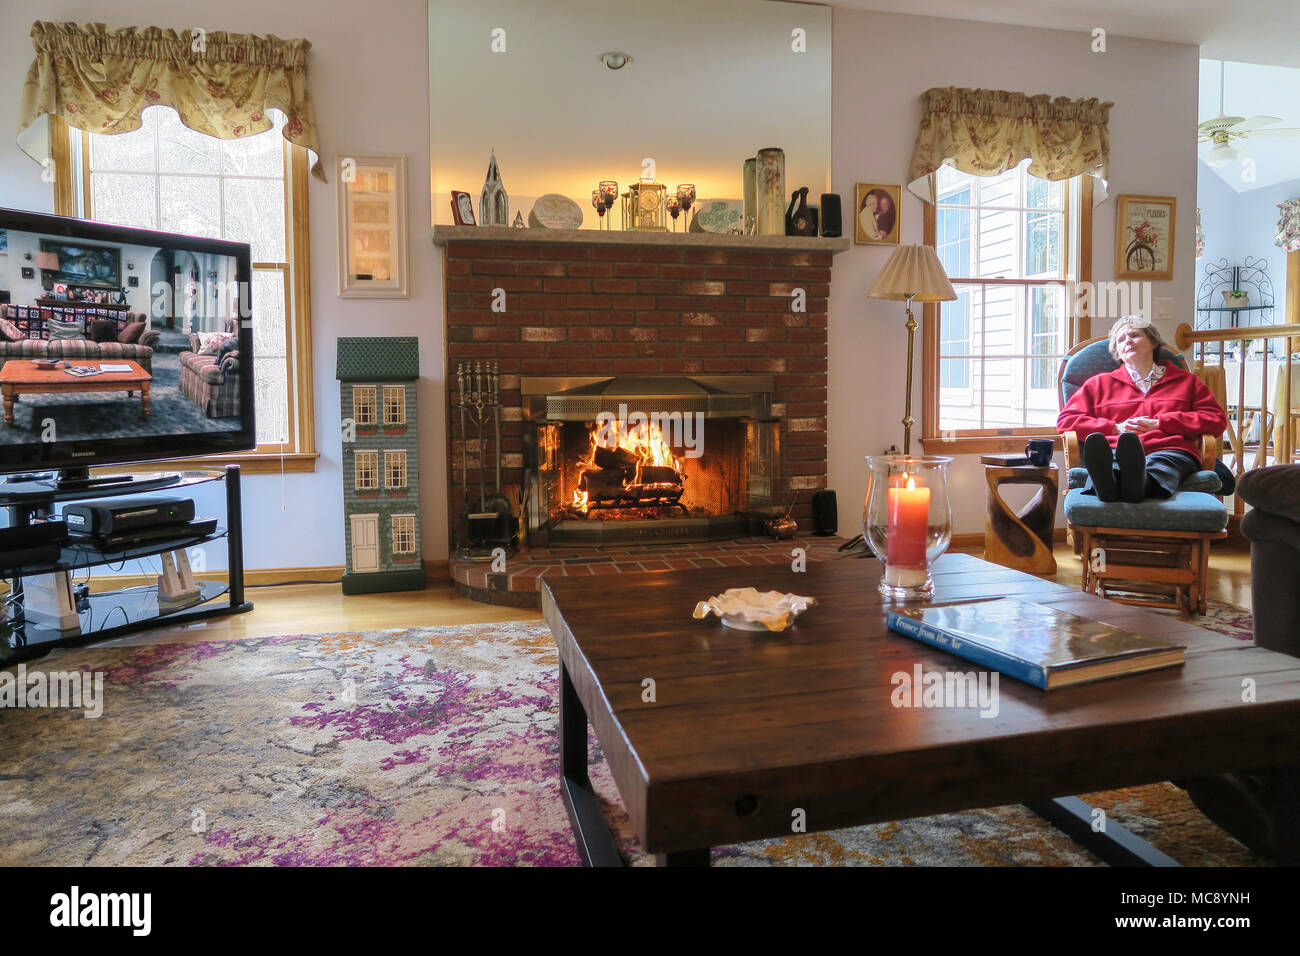 Inviting Family Room with Fire in Fireplace, USA - Stock Image